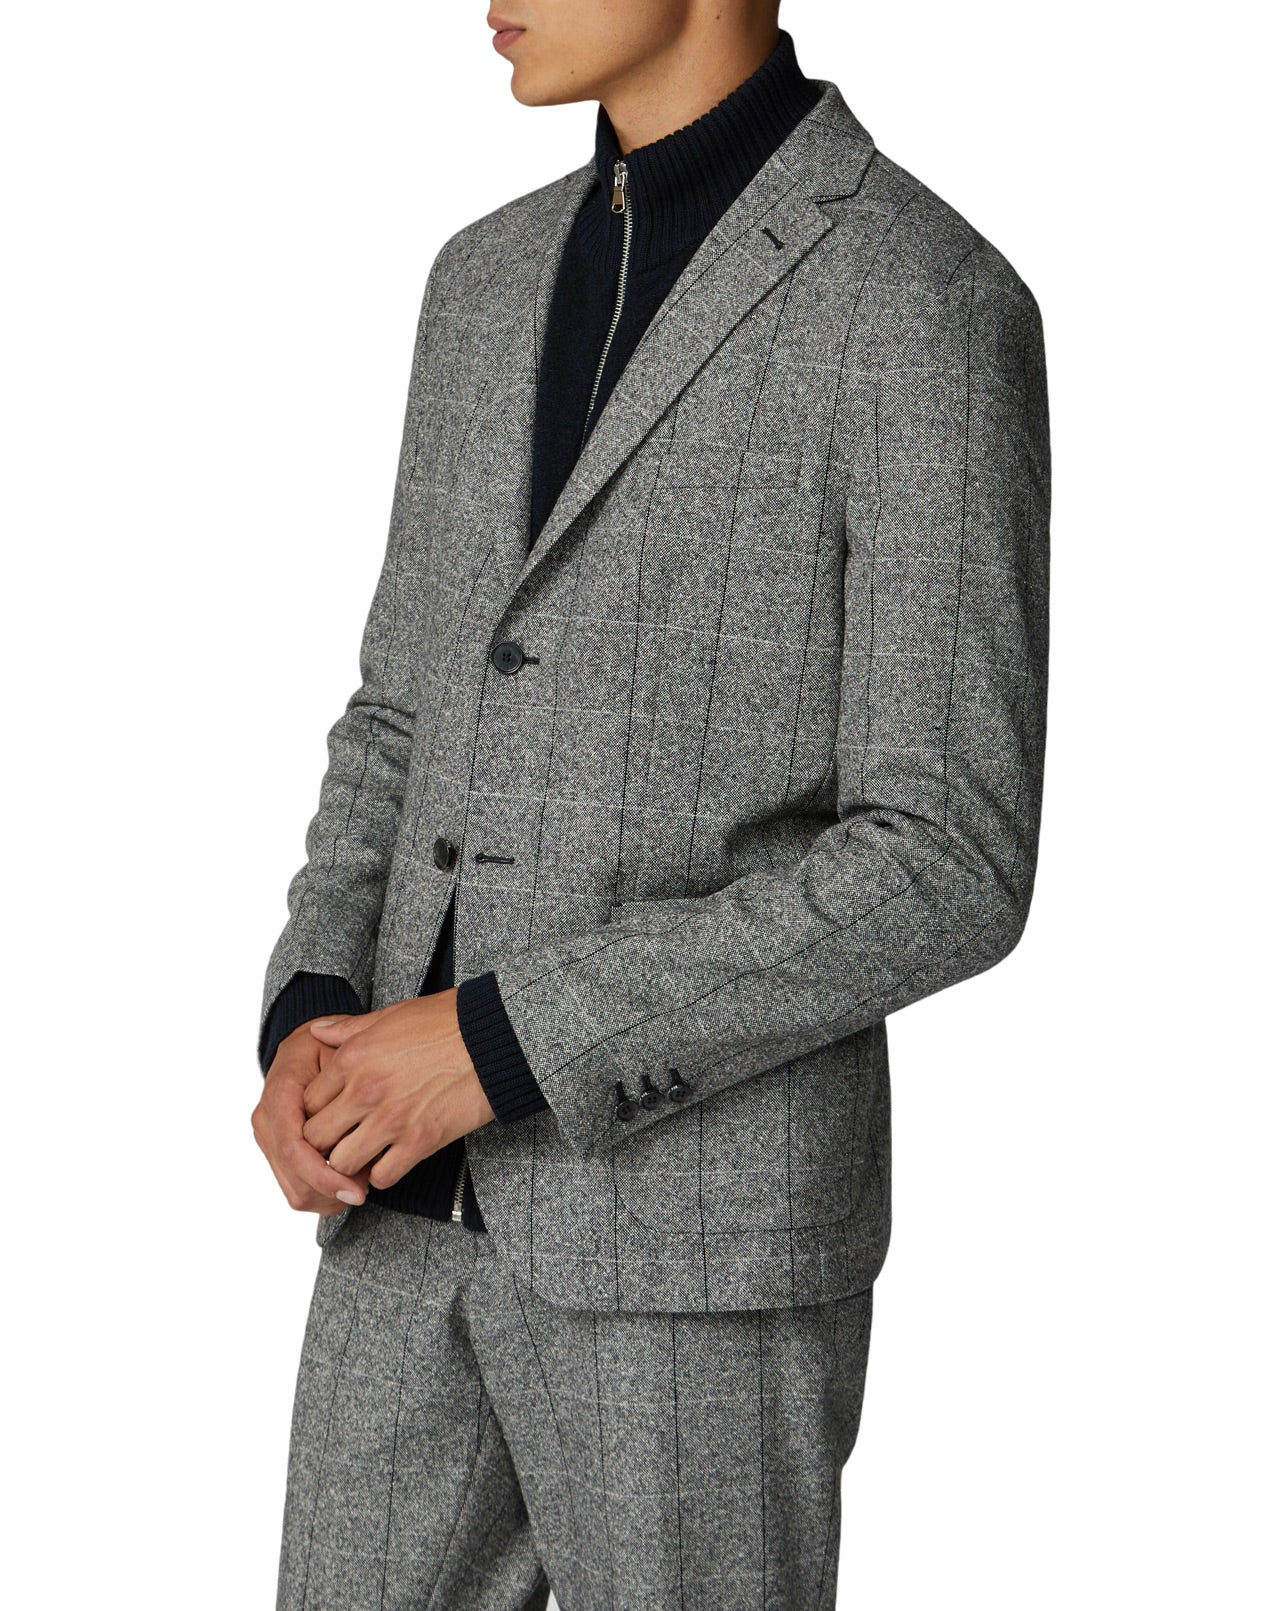 Salt and Pepper Blazer - Grey